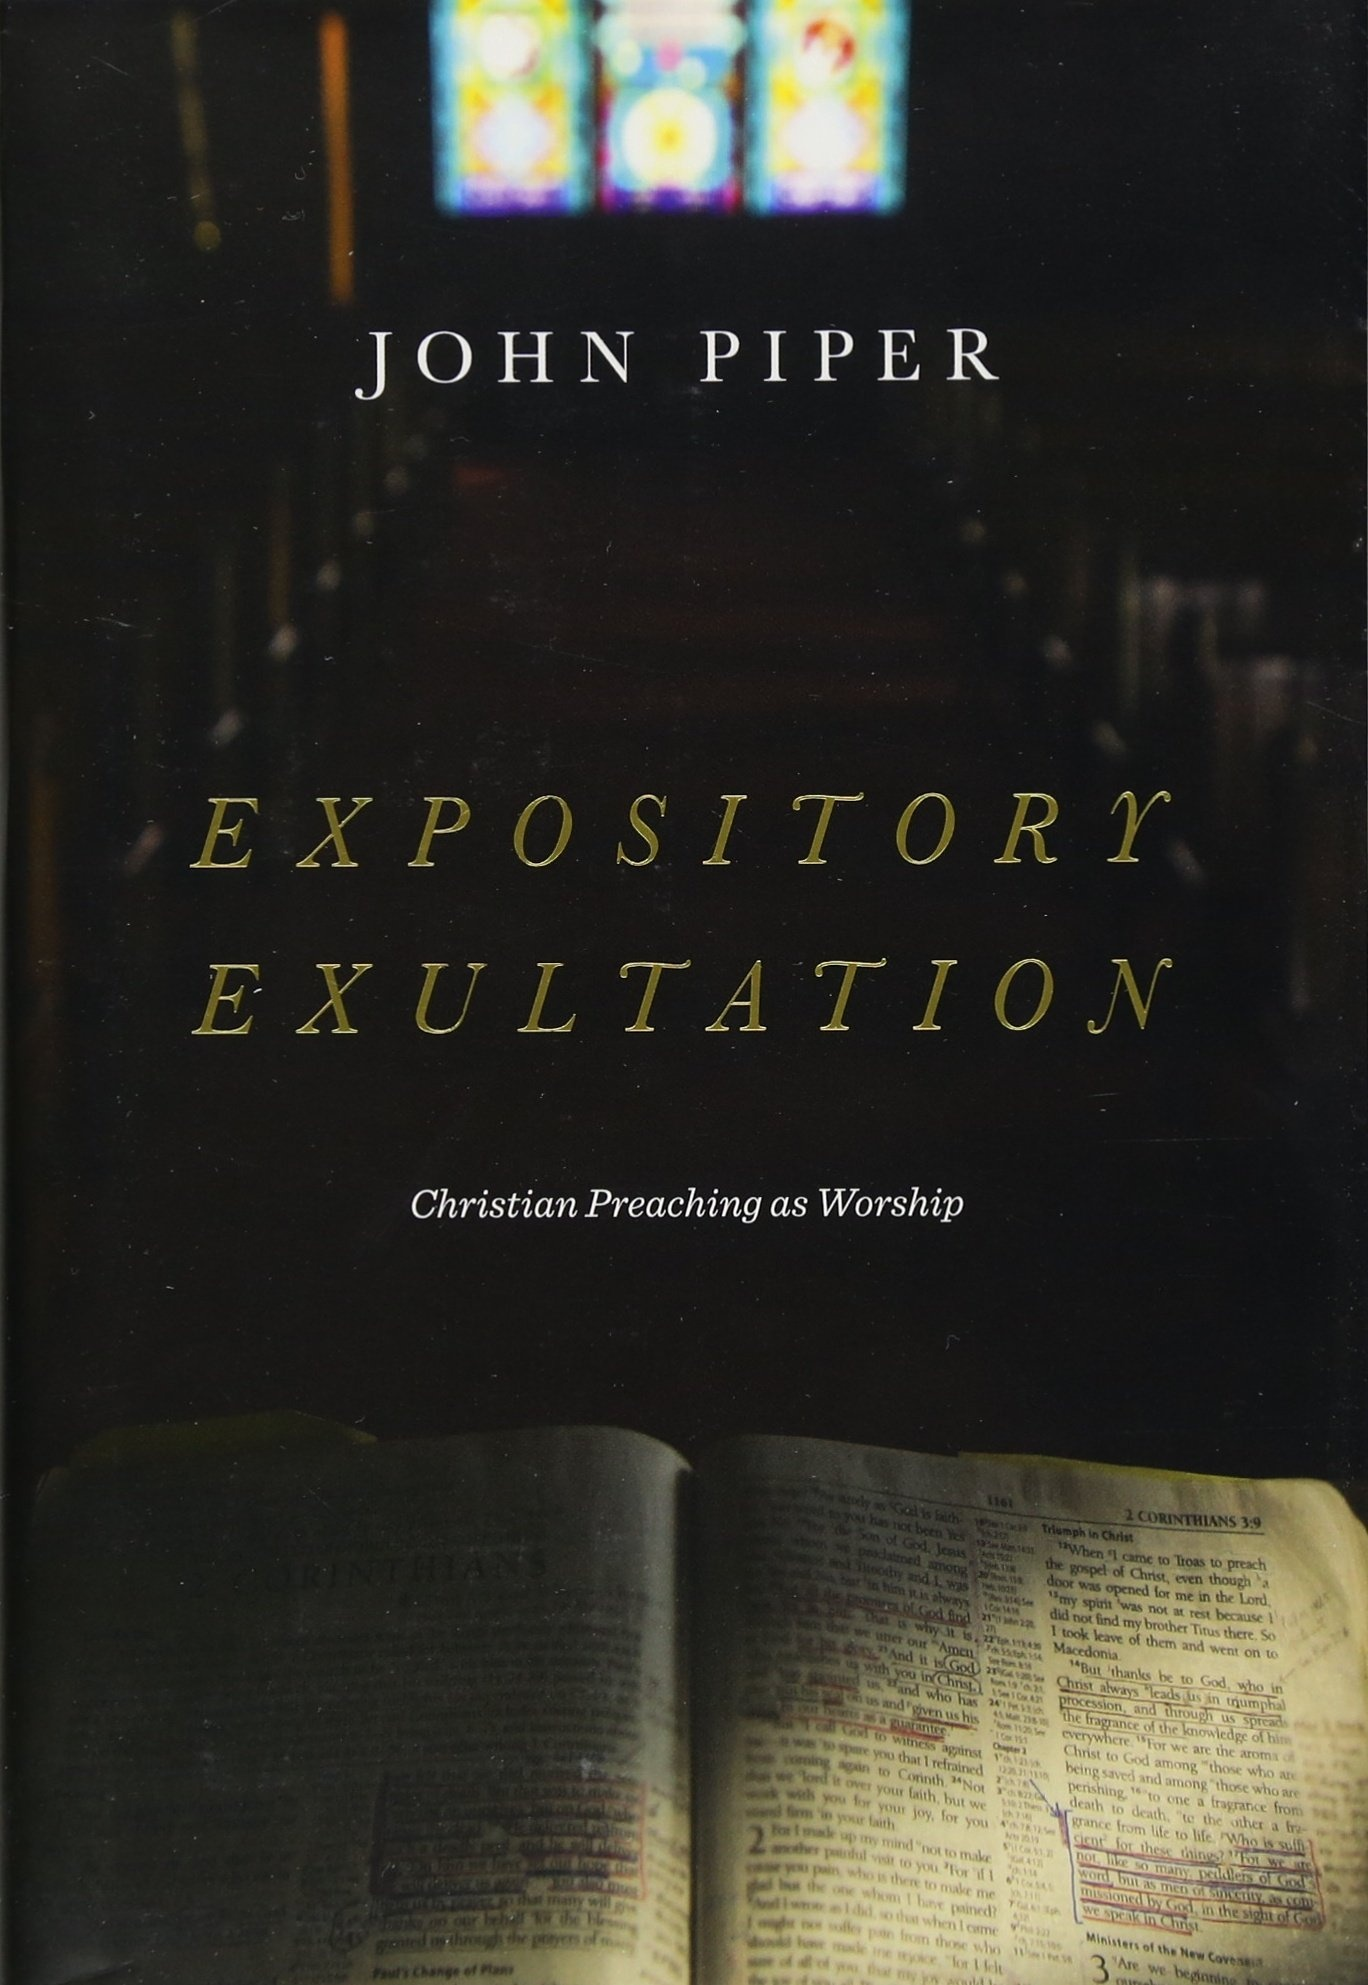 Expository ExultationChristian Preaching as Worship